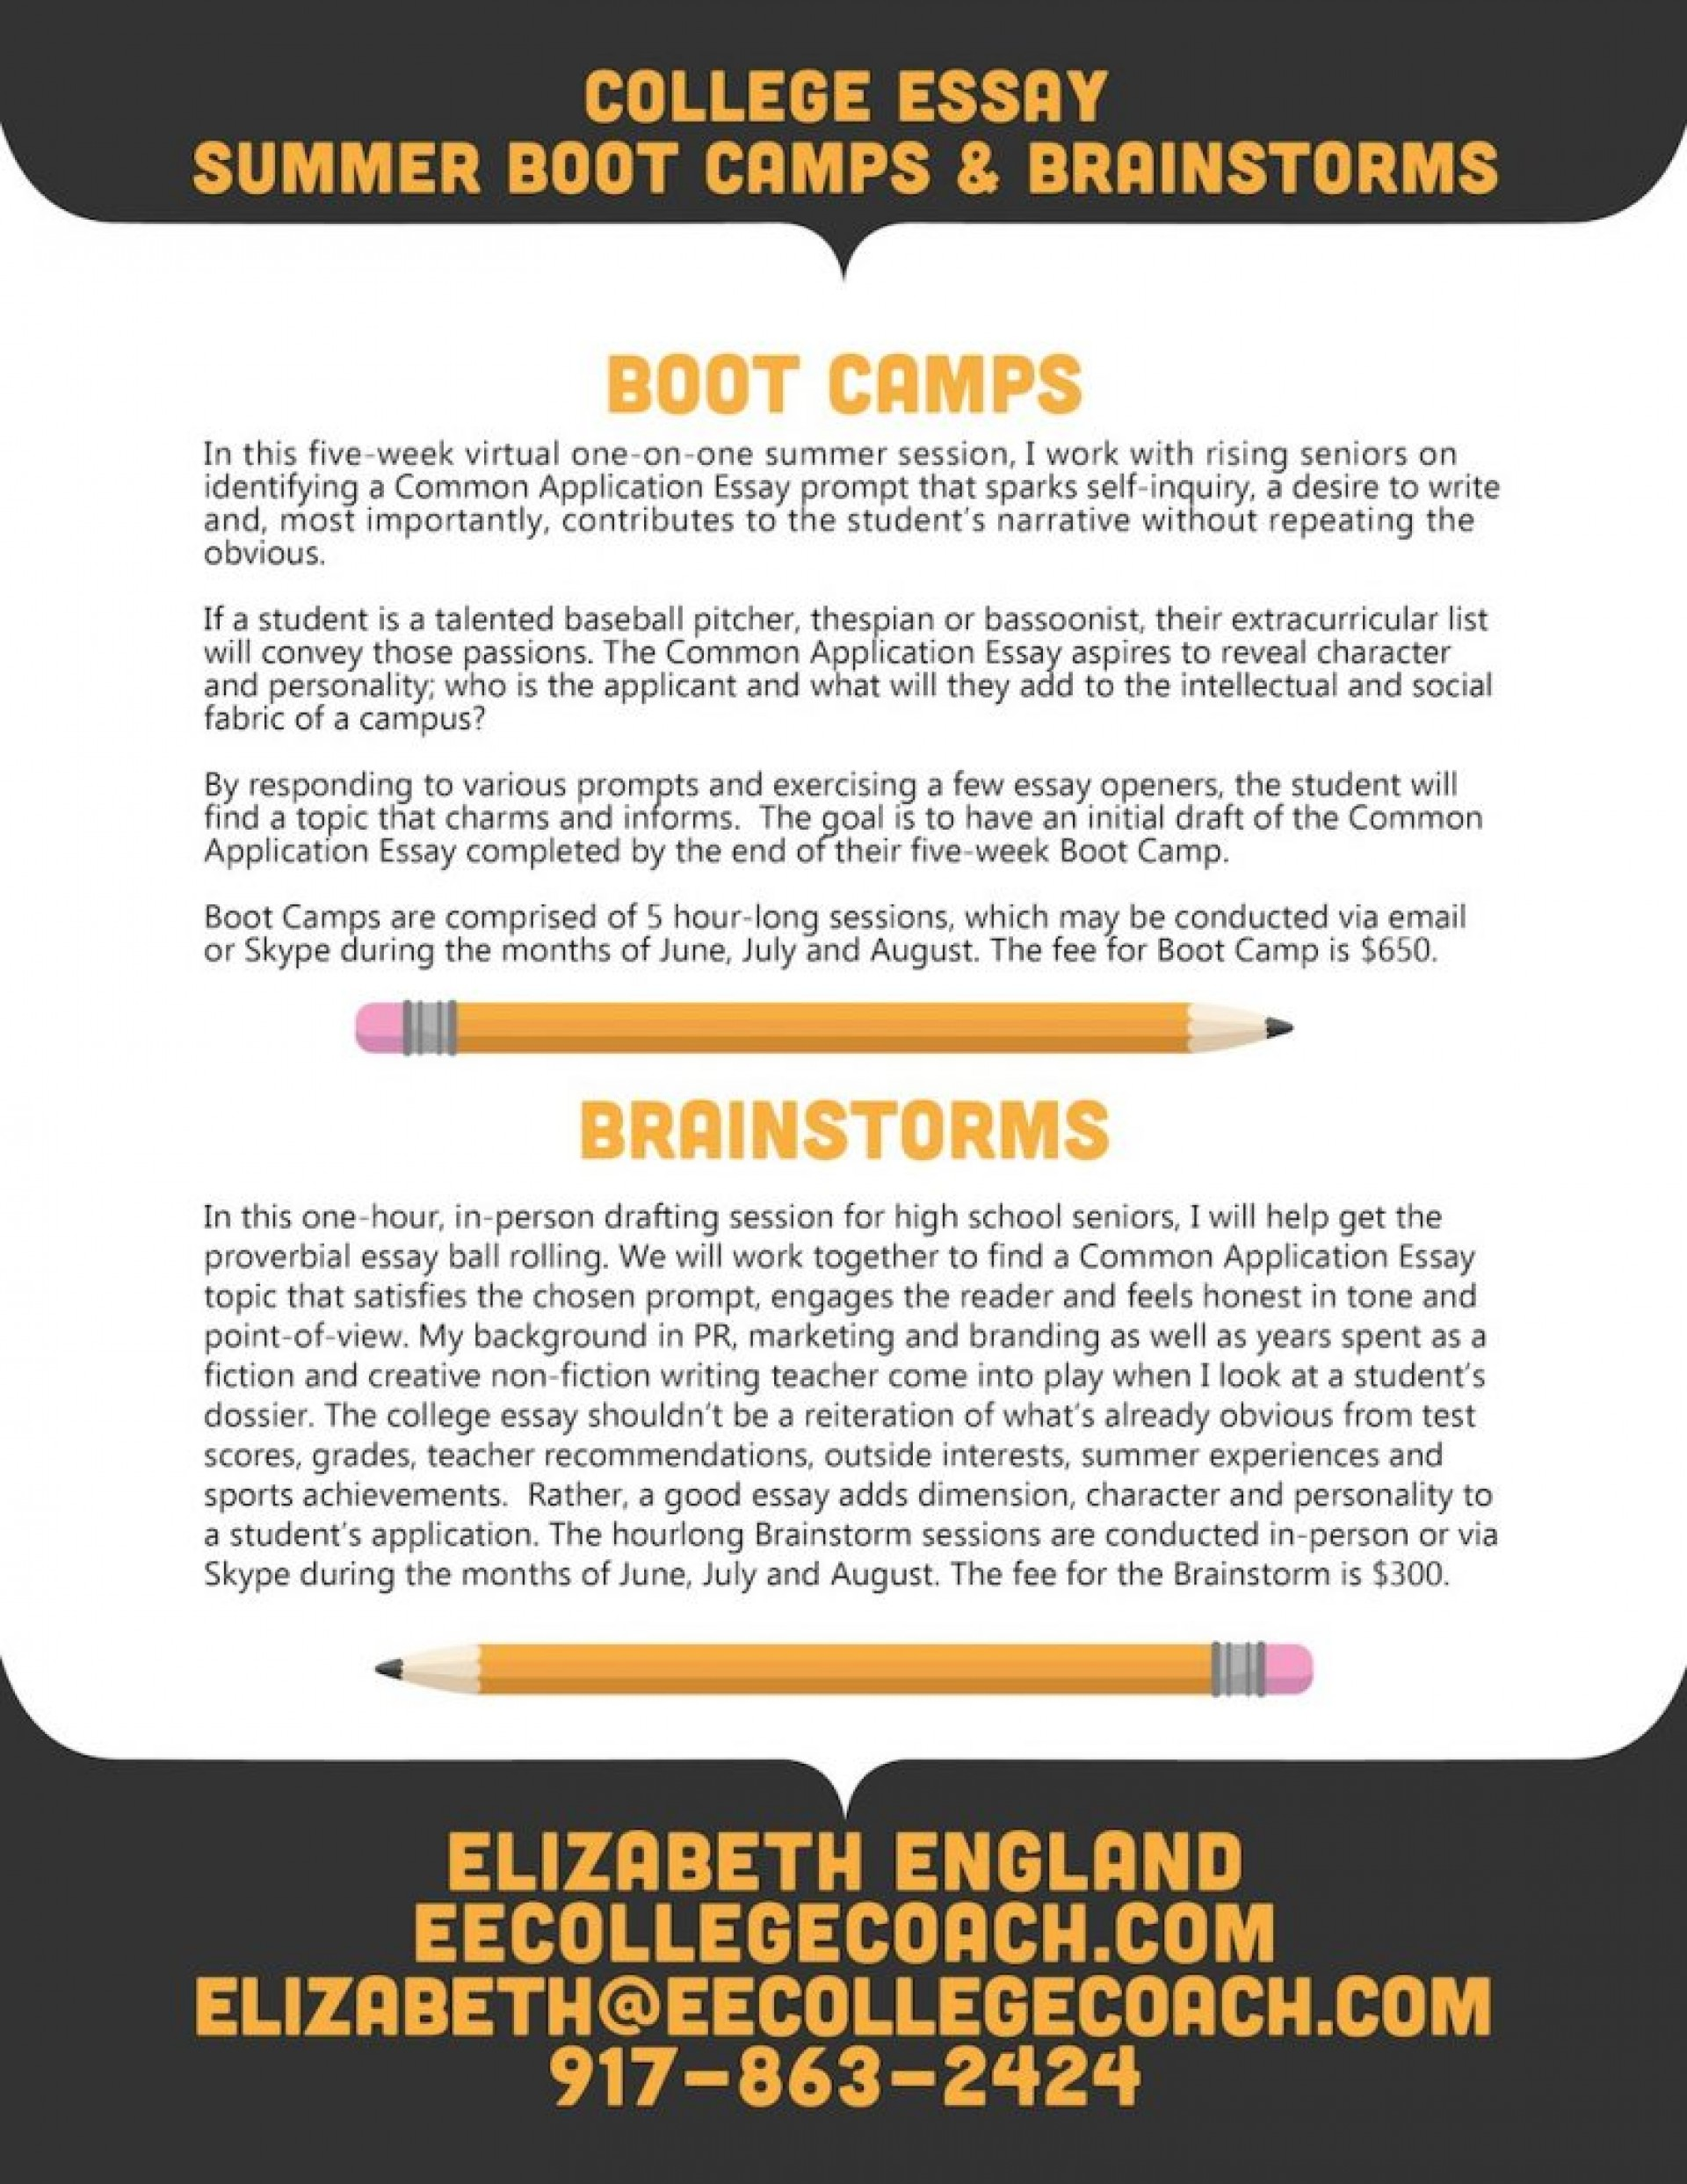 004 College Essay Summer Boot Camps Brainstorms 791x1024 Example Astounding Princeton Review Essays Examples 1920